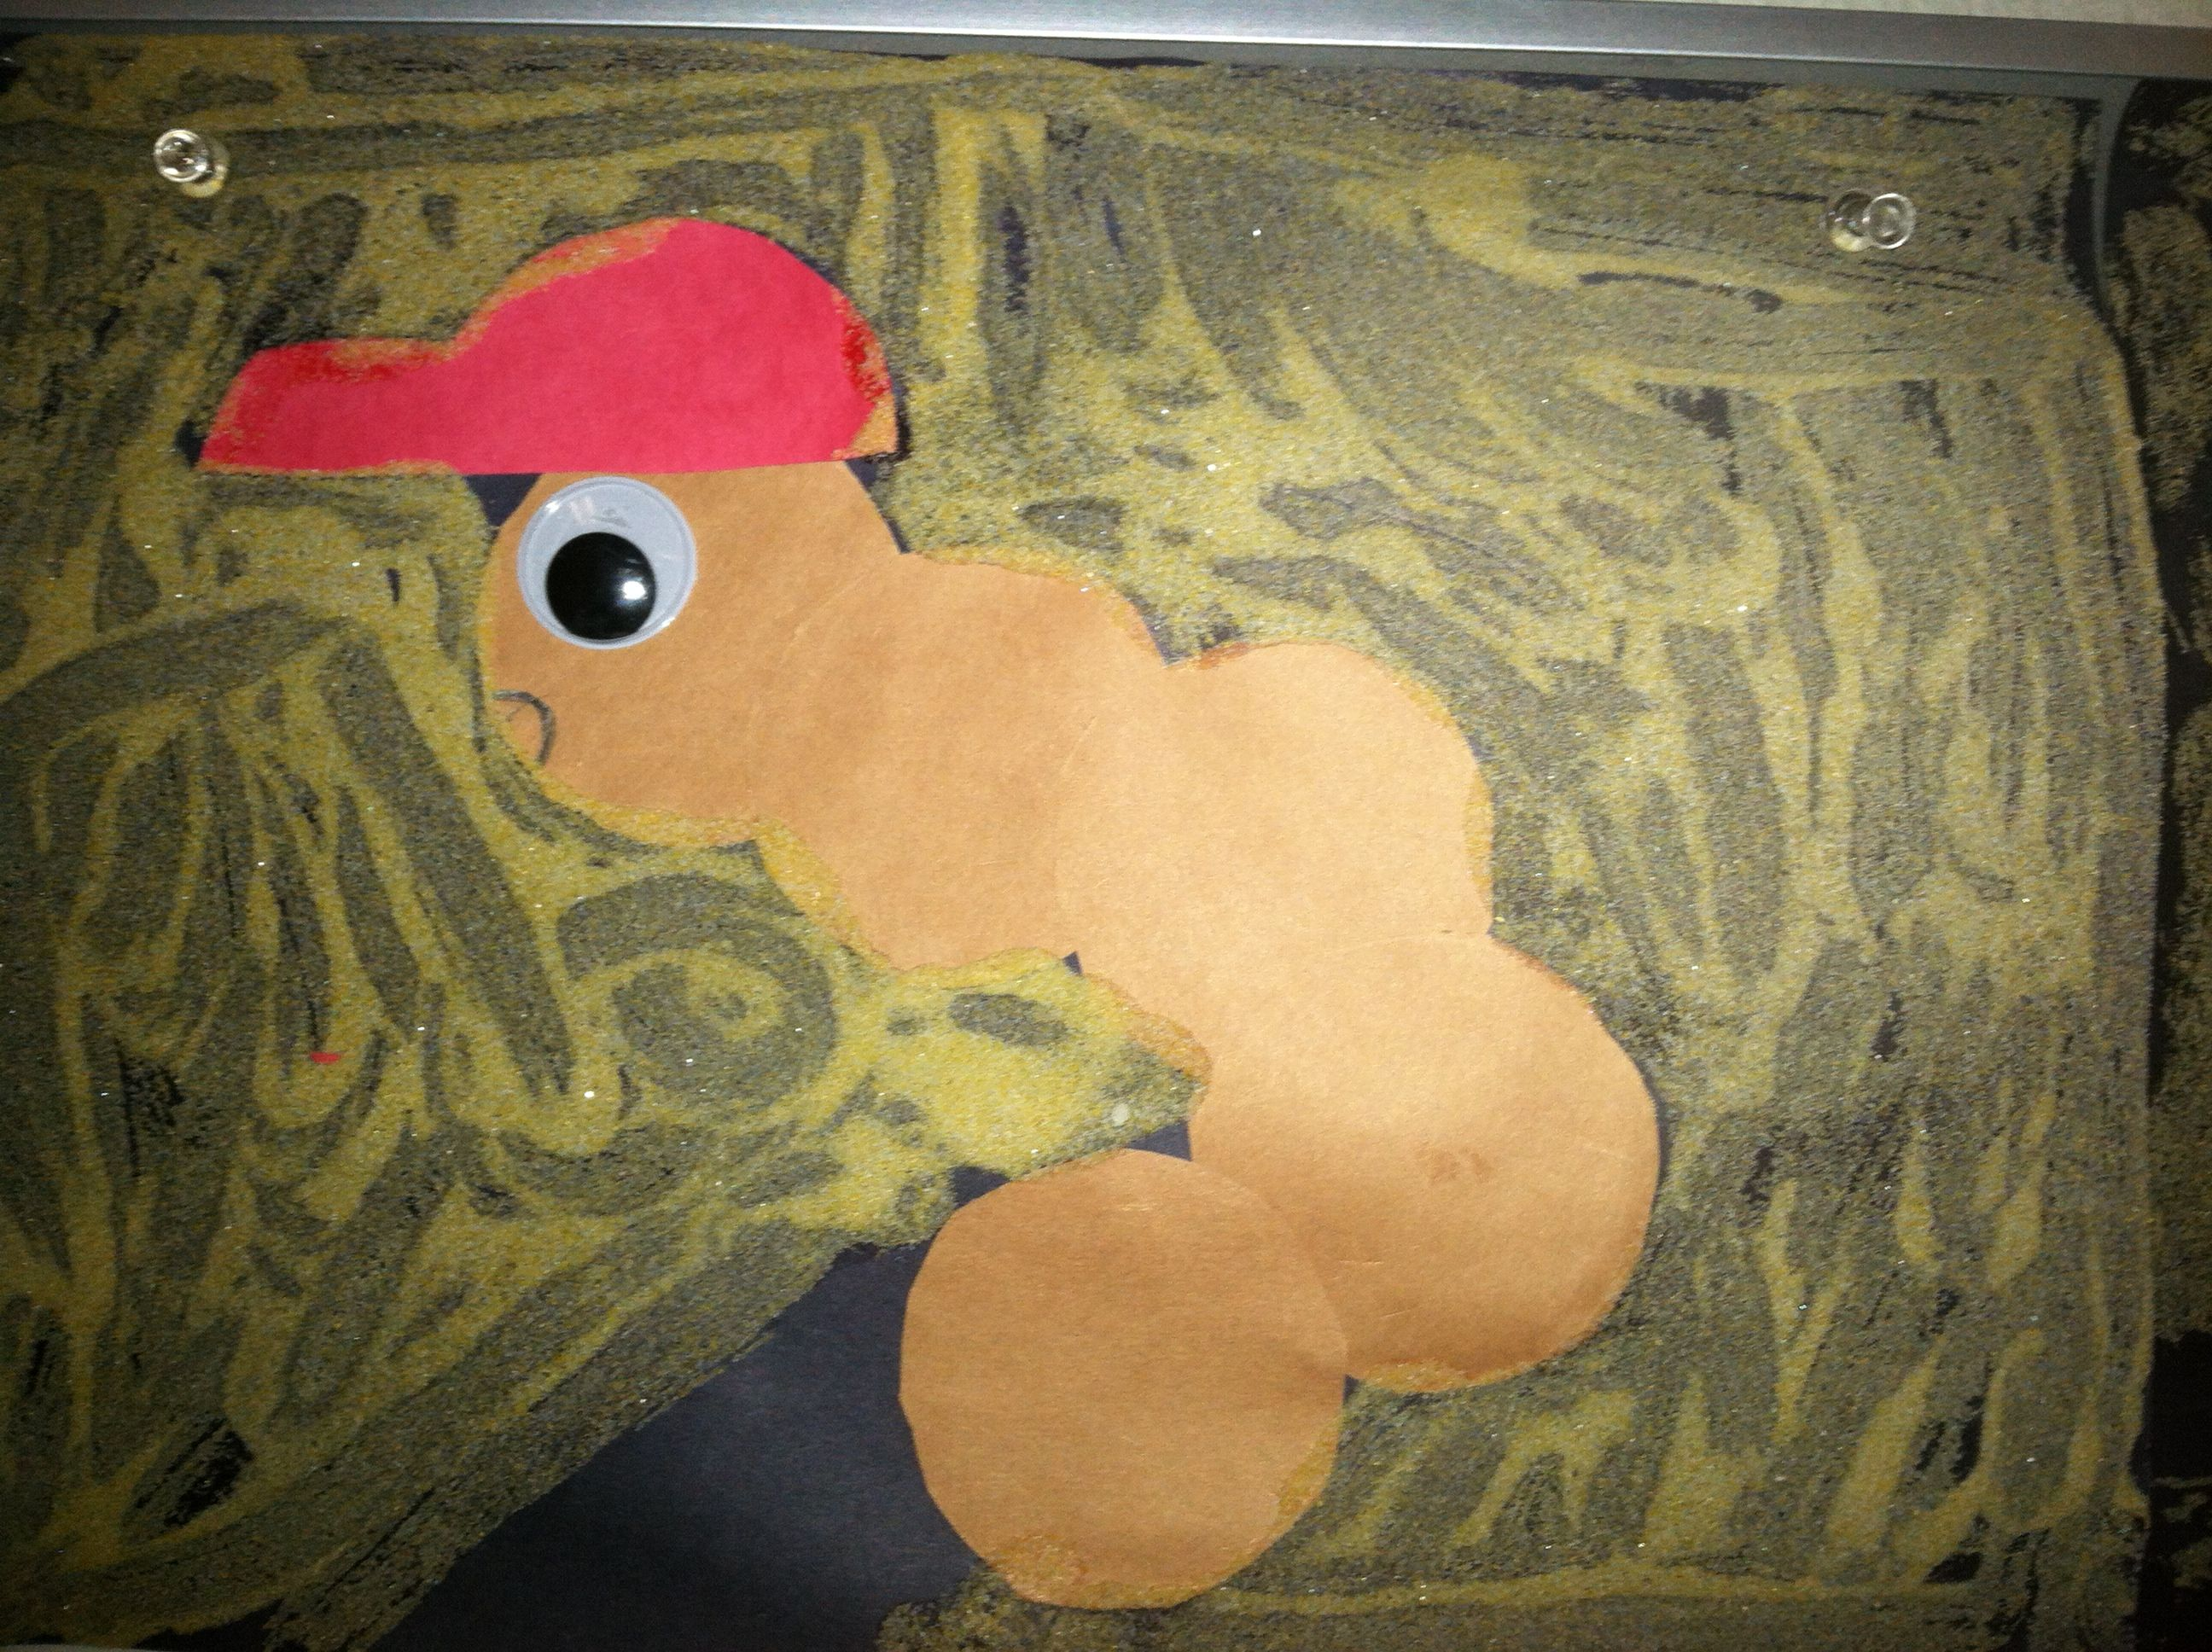 Diary Of A Worm Follow Up Craft Used A Basic Circle Template For Body And Tracer For The Hat